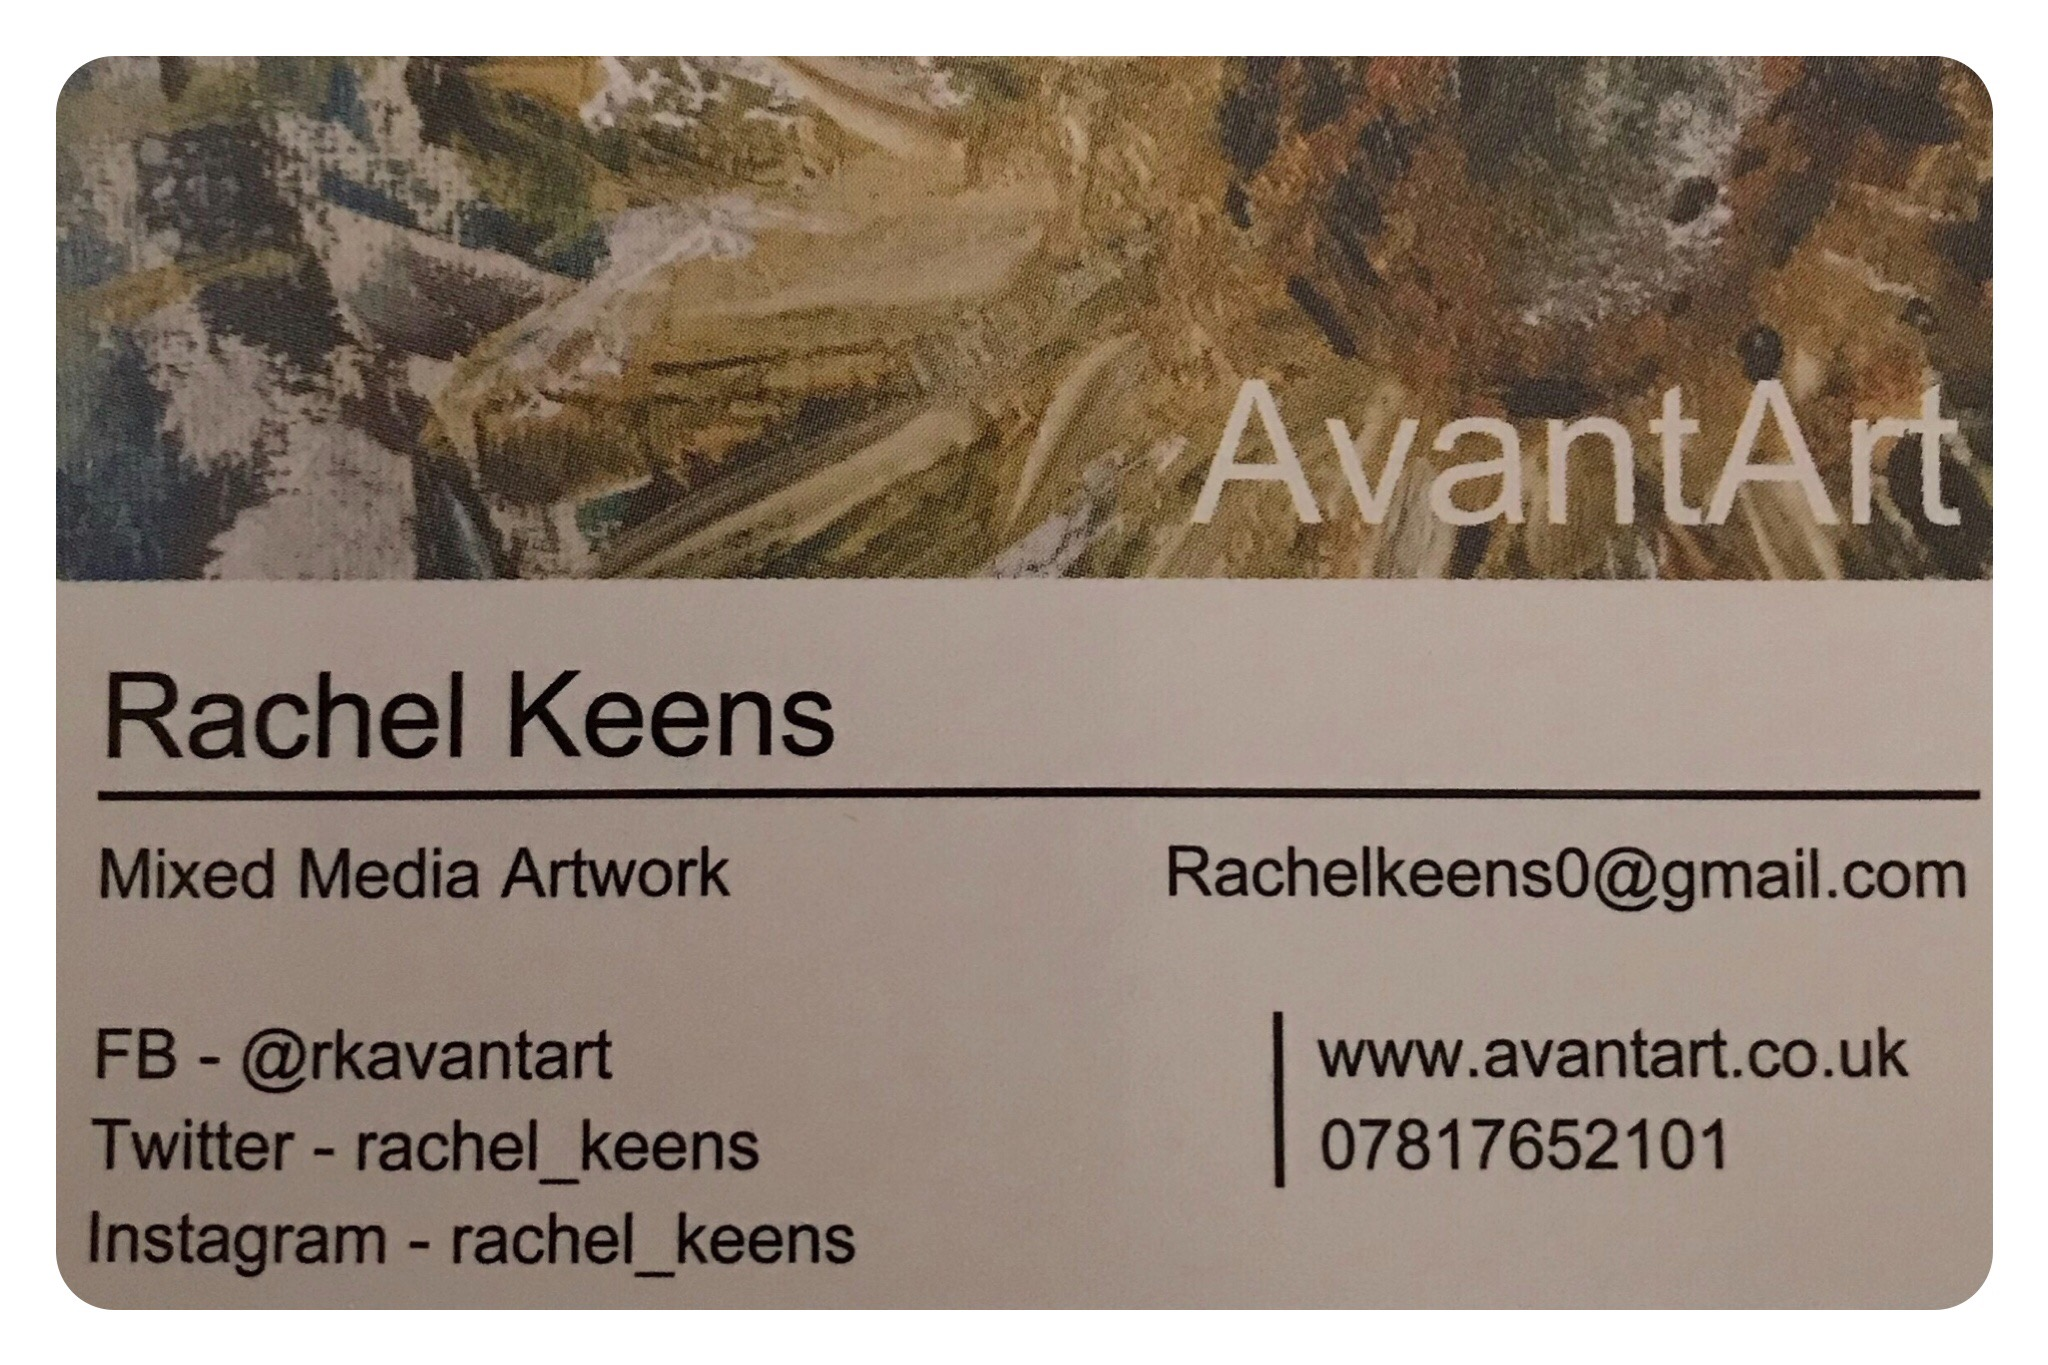 Buy Art and Contact Info